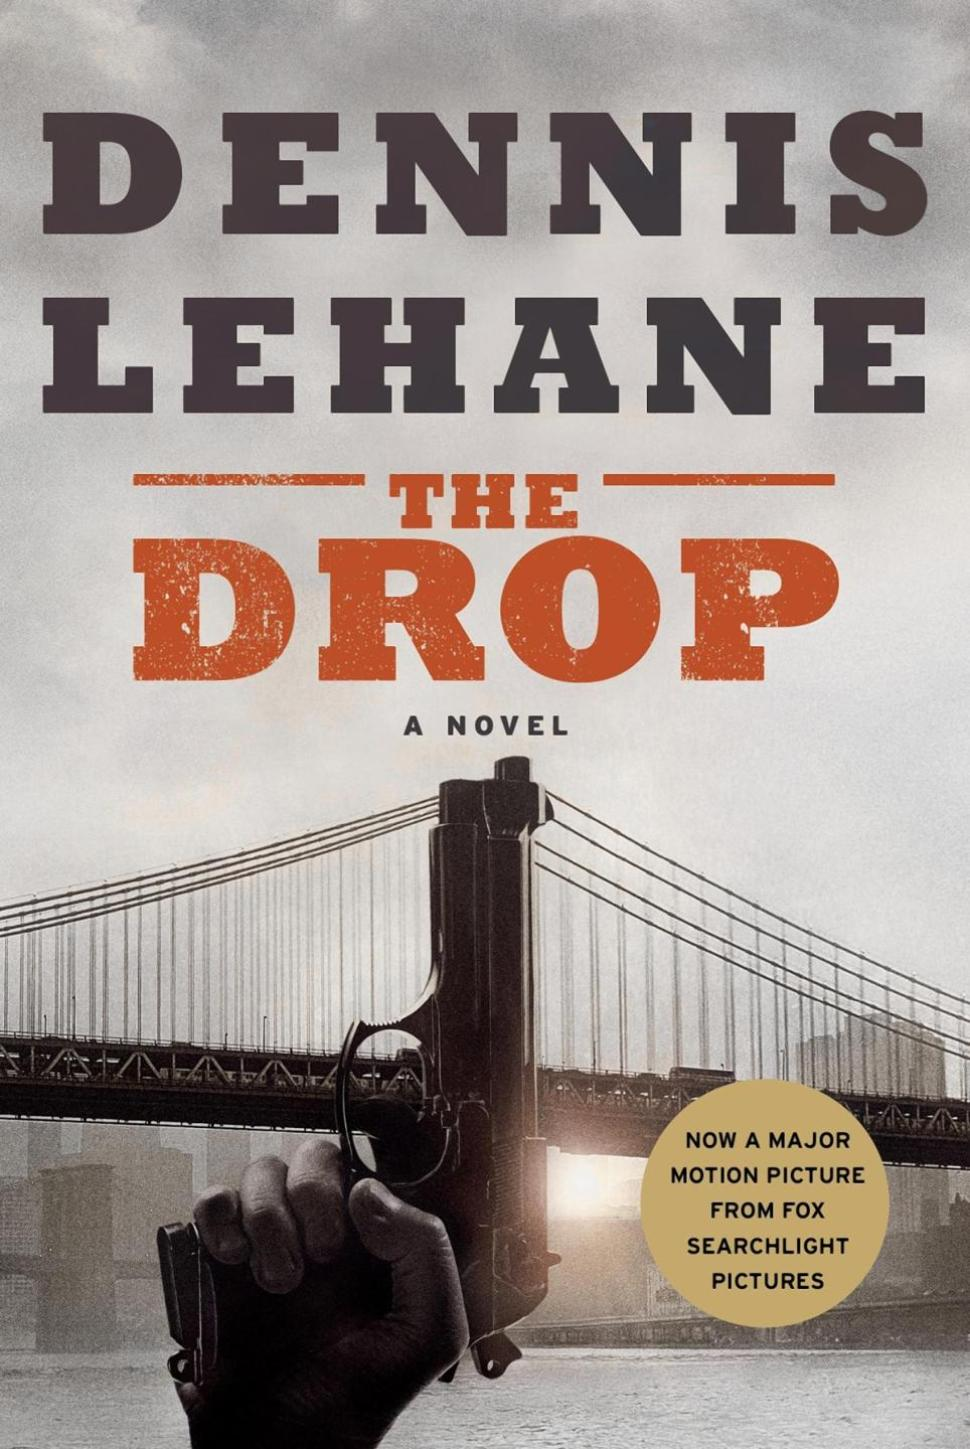 If you liked Mystic River, try Dennis Lehane's latest novel.